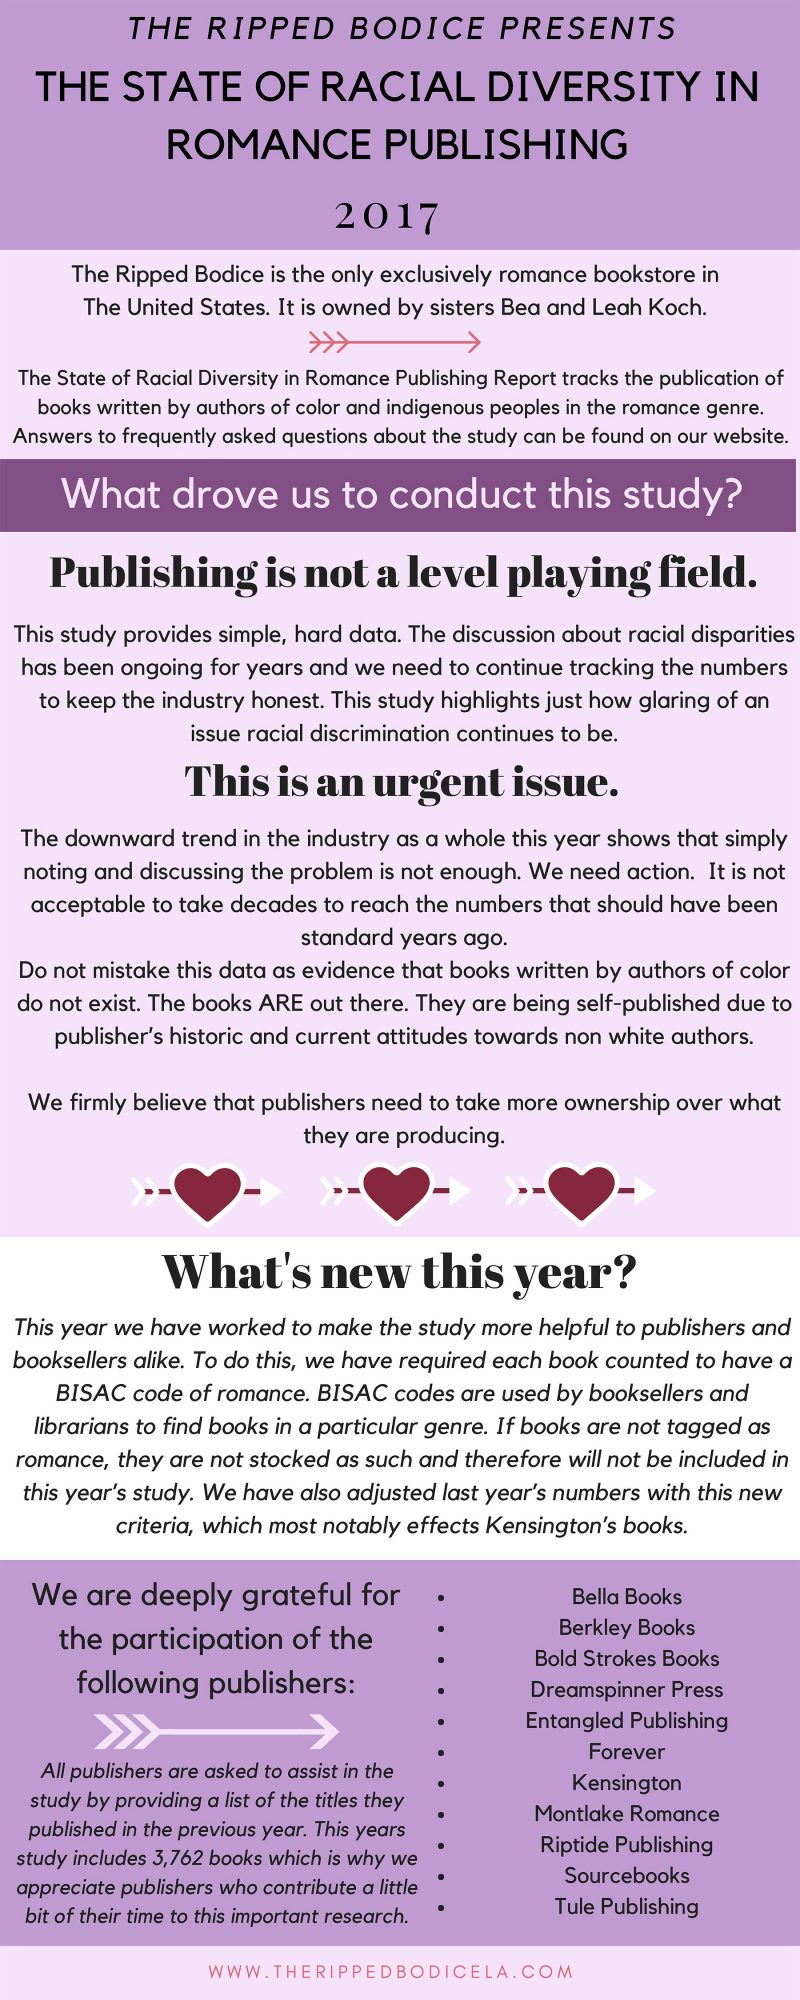 2017 diversity study CR: The Ripped Bodice